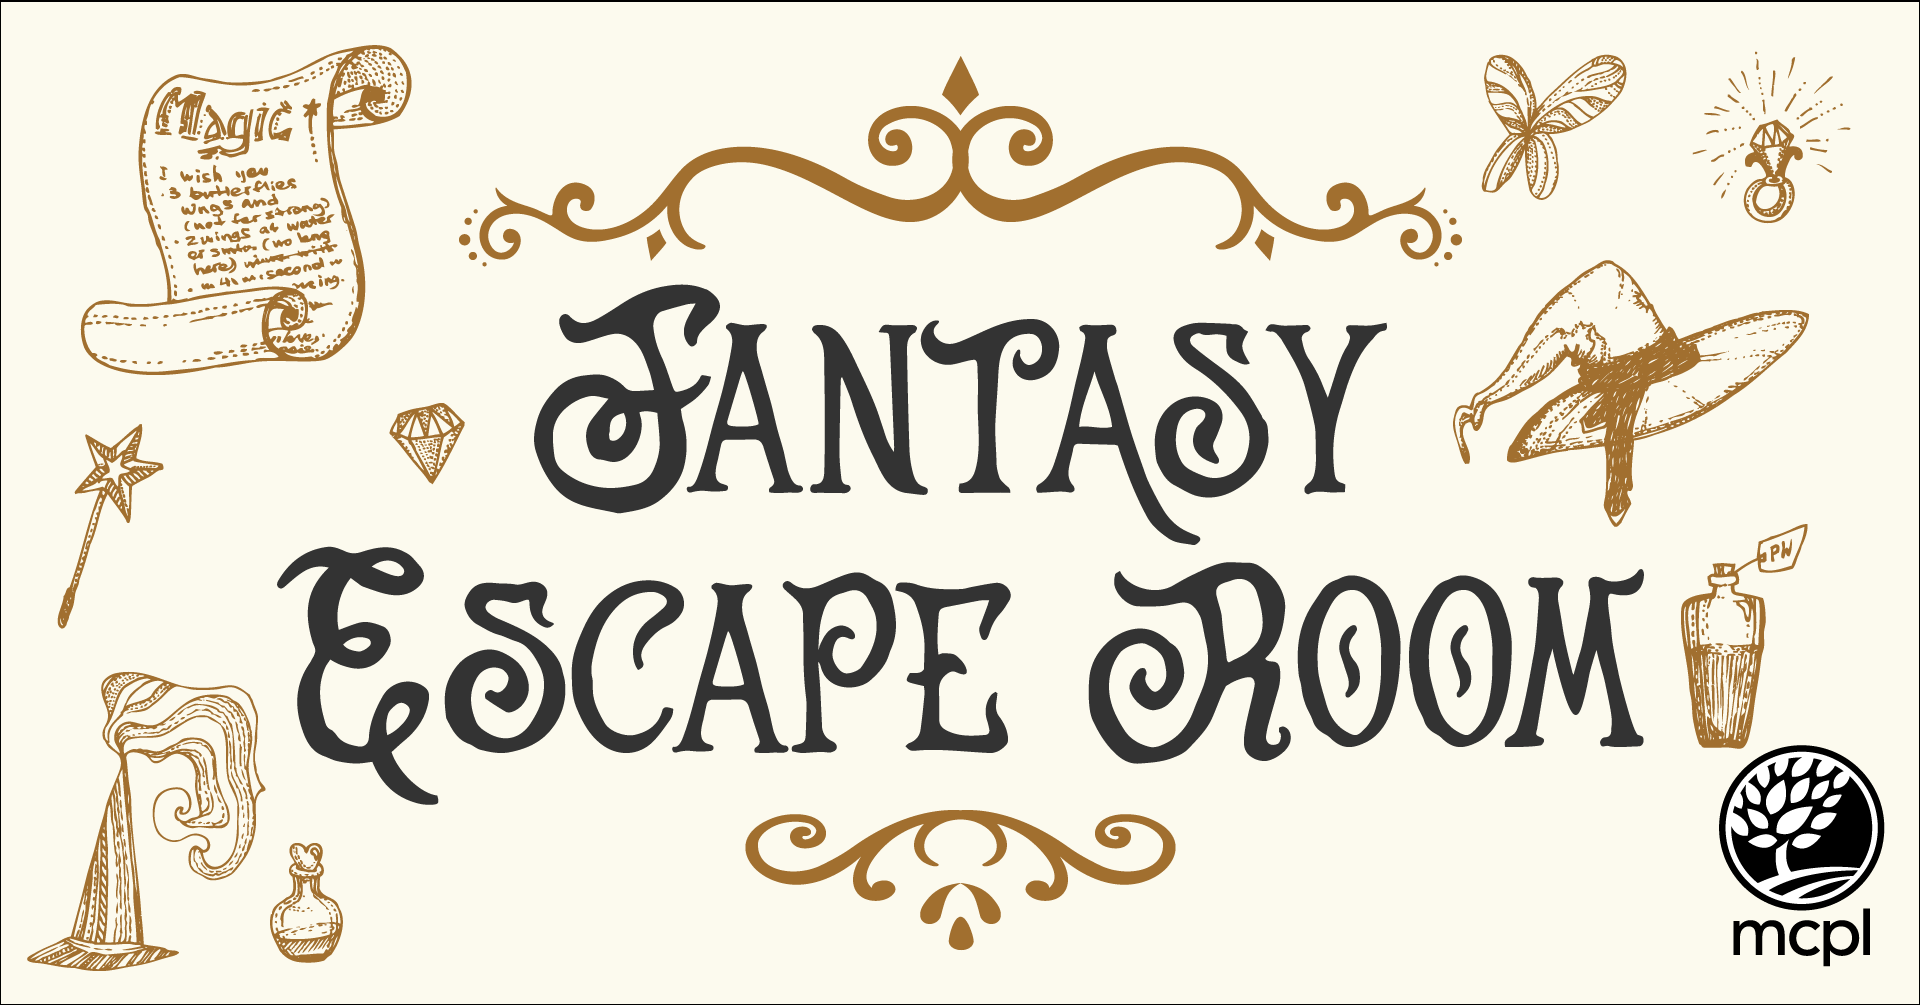 Fantasy Escape Room